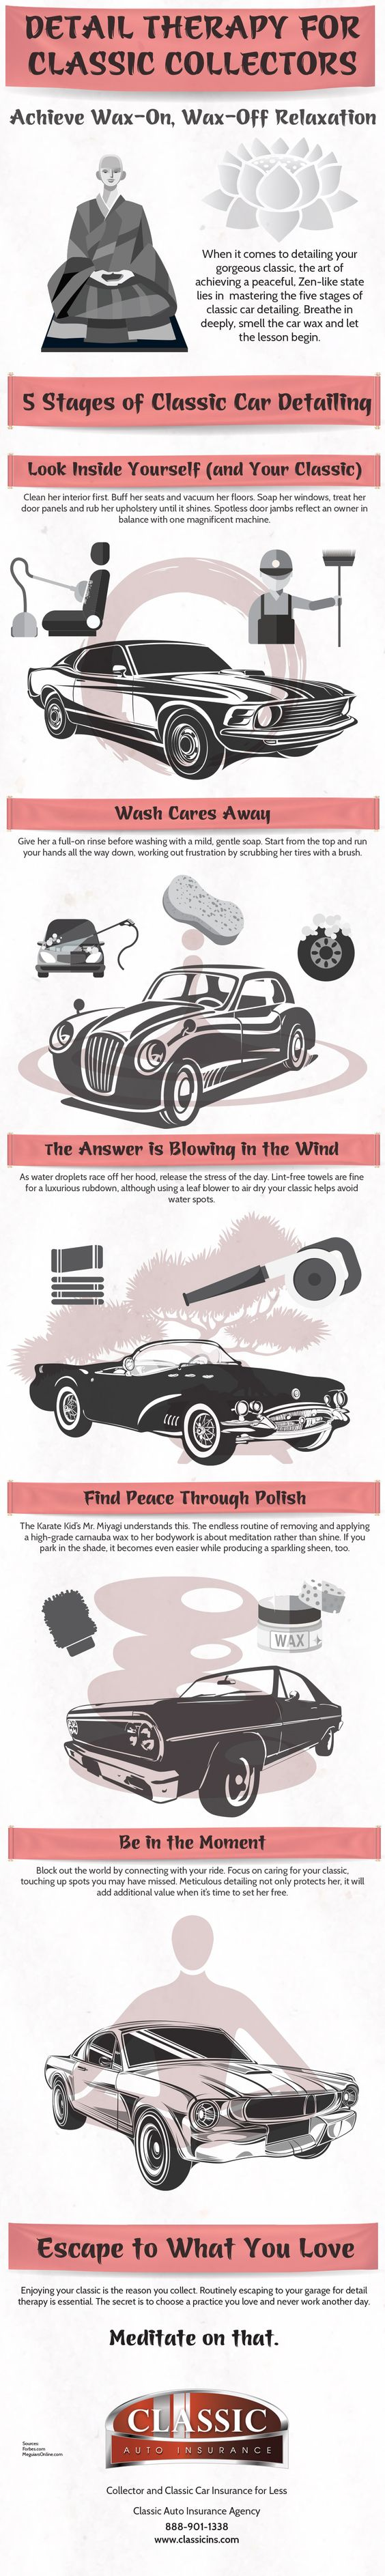 Pin By Classic Auto Insurance Agency On Ideas For Rebuild Car Detailing Classic Cars Classic